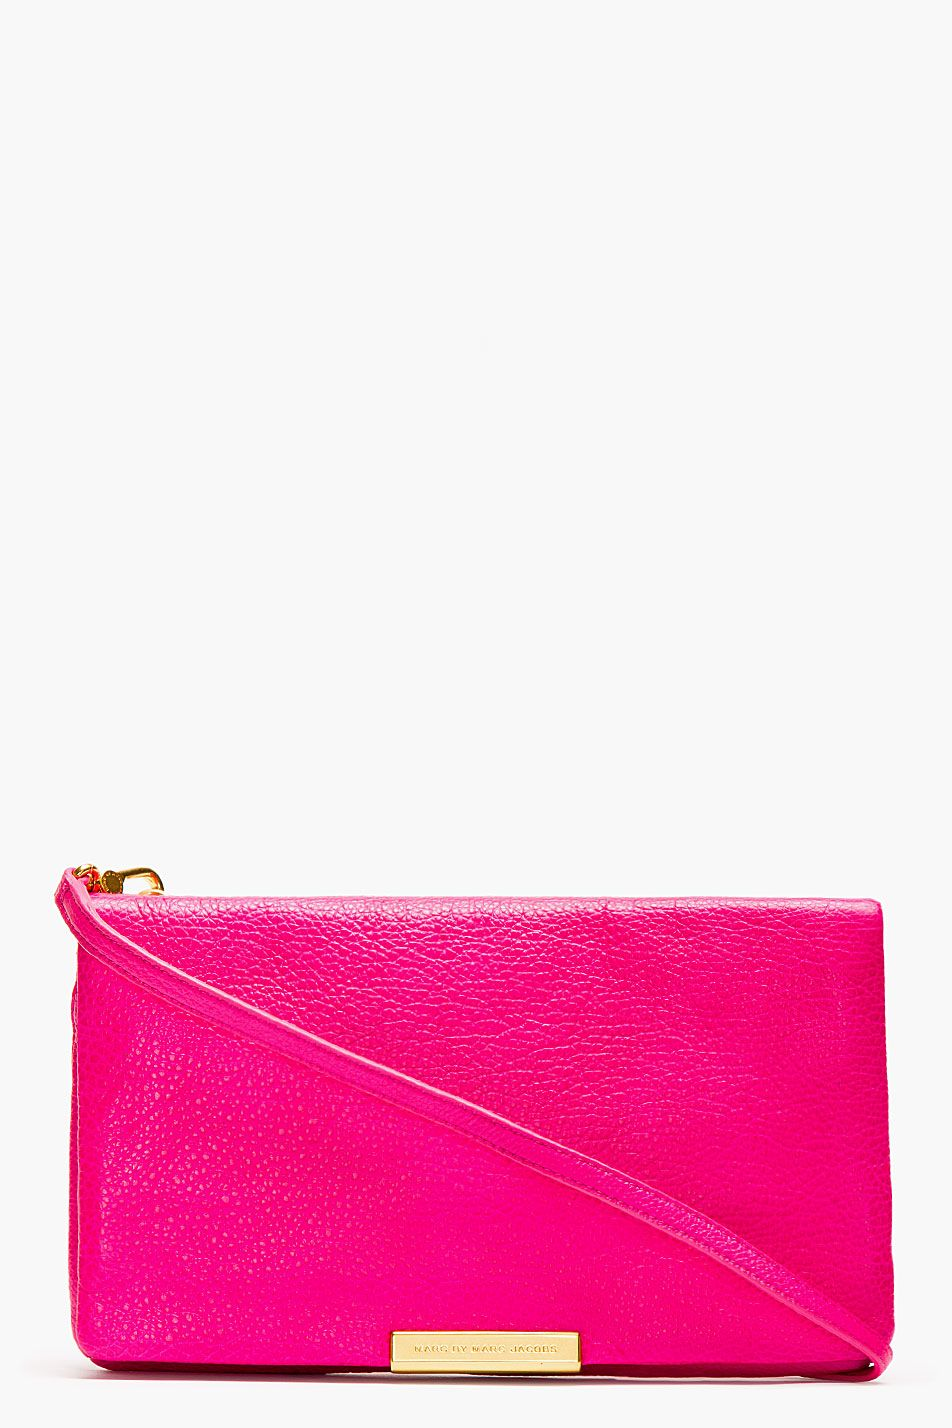 Marc By Marc Jacobs Pink Leather Raveheart Clutch